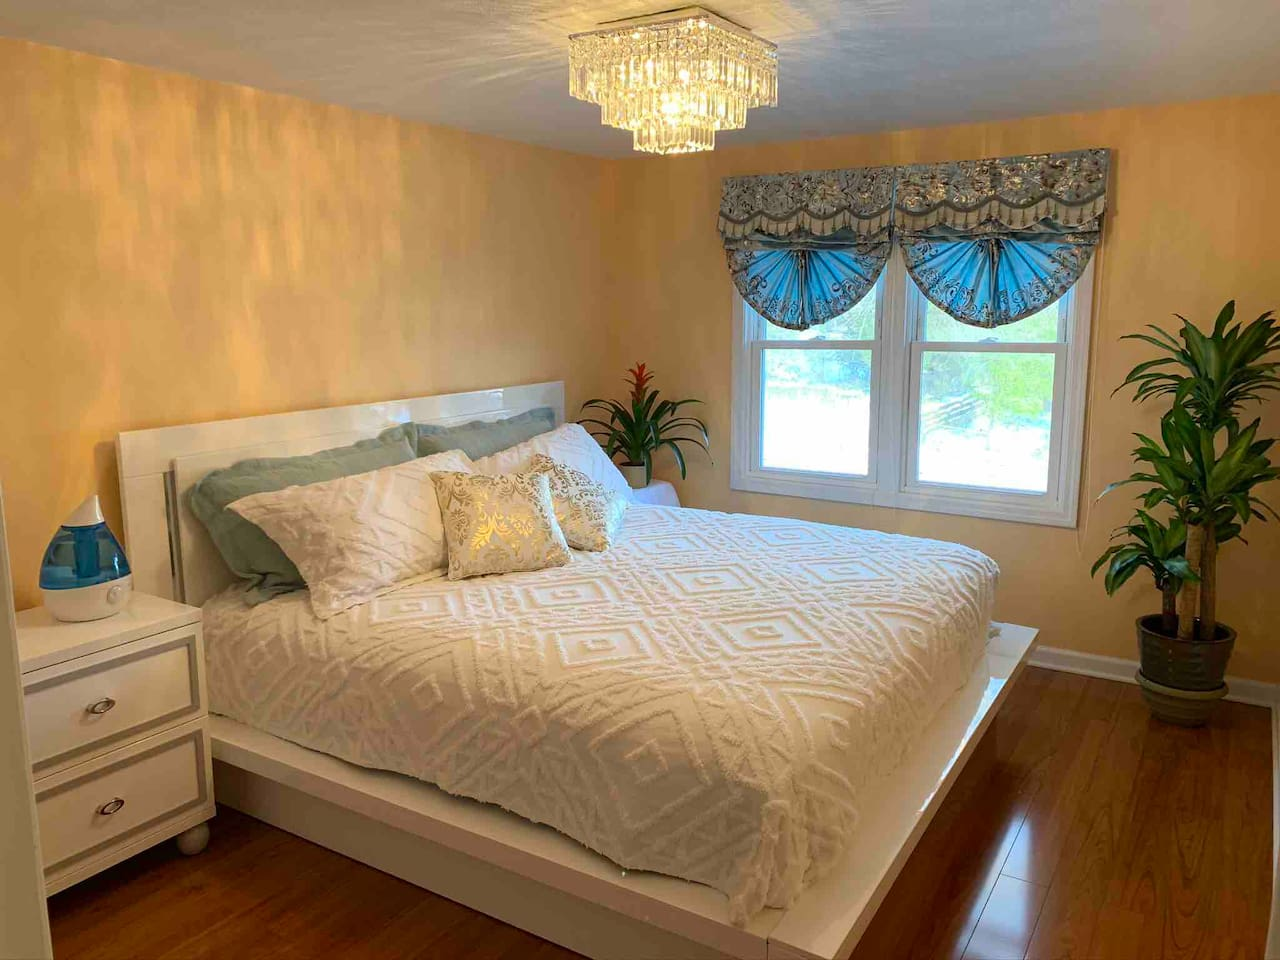 The master bedroom is bright and spacious upstairs